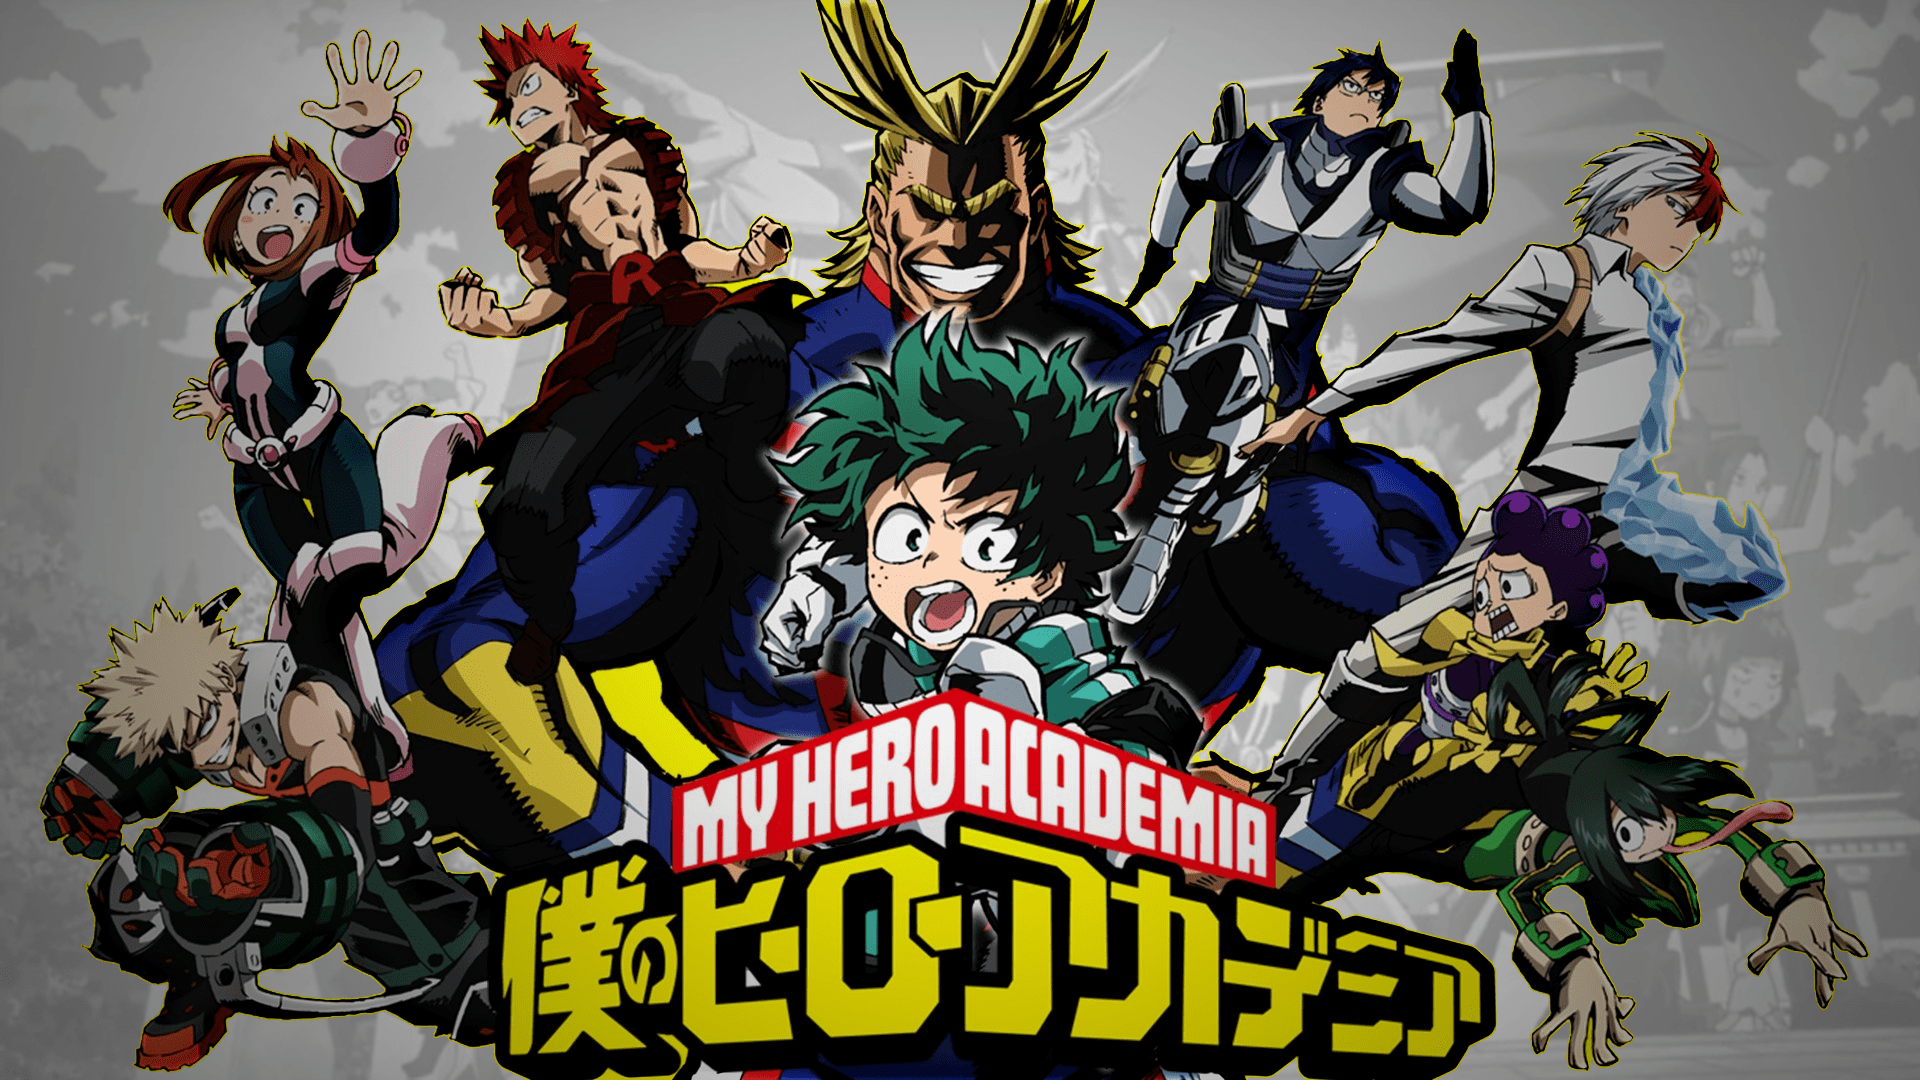 My Hero Academia Chapter 235